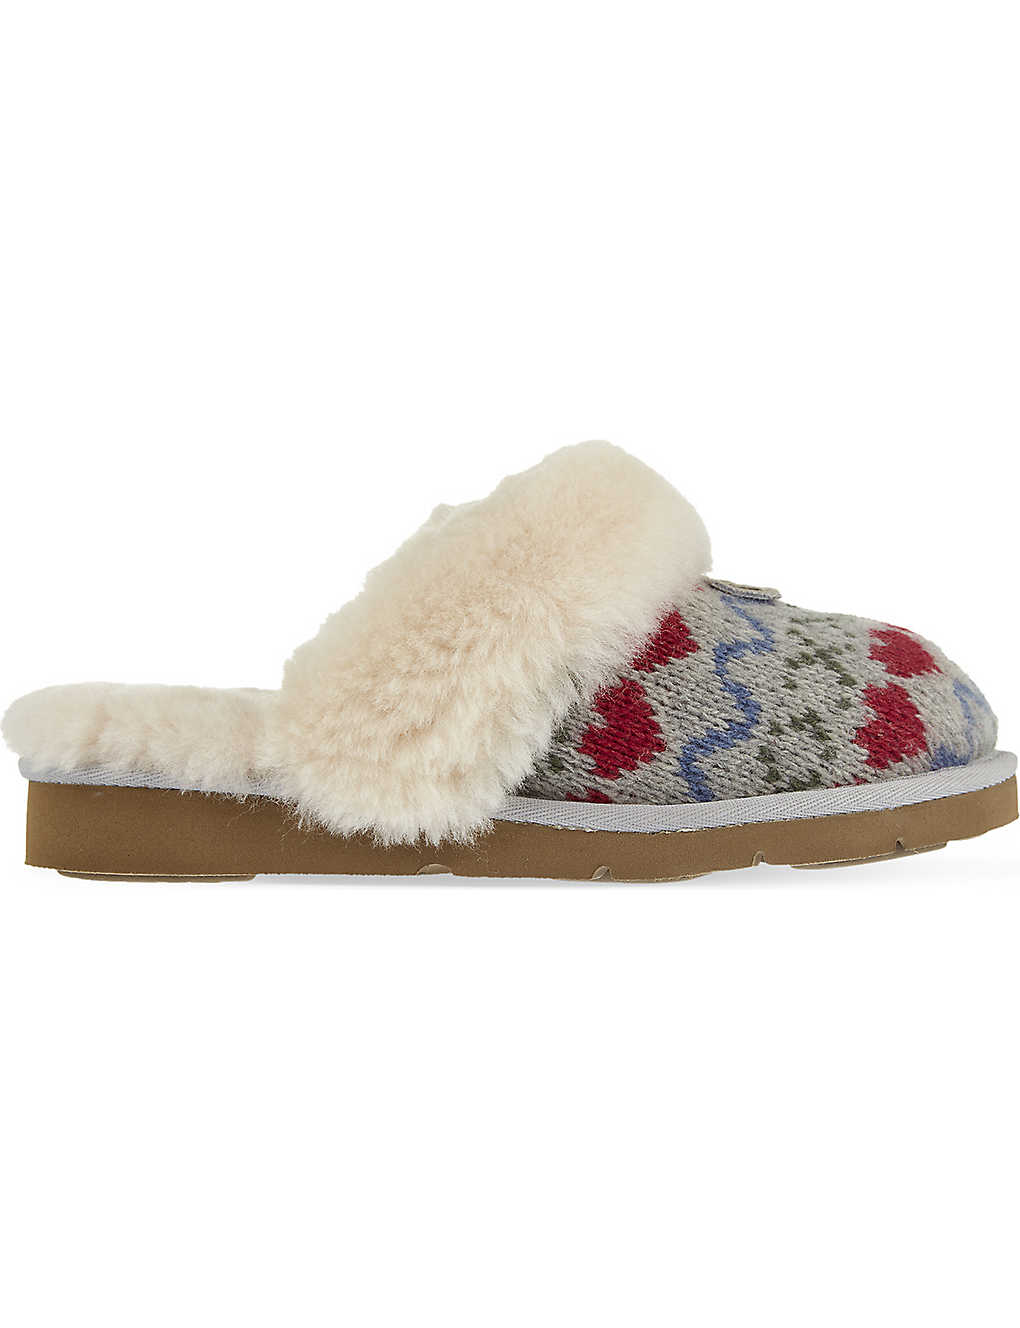 64bc5e7765b UGG - Cozy knit heart slippers | Selfridges.com